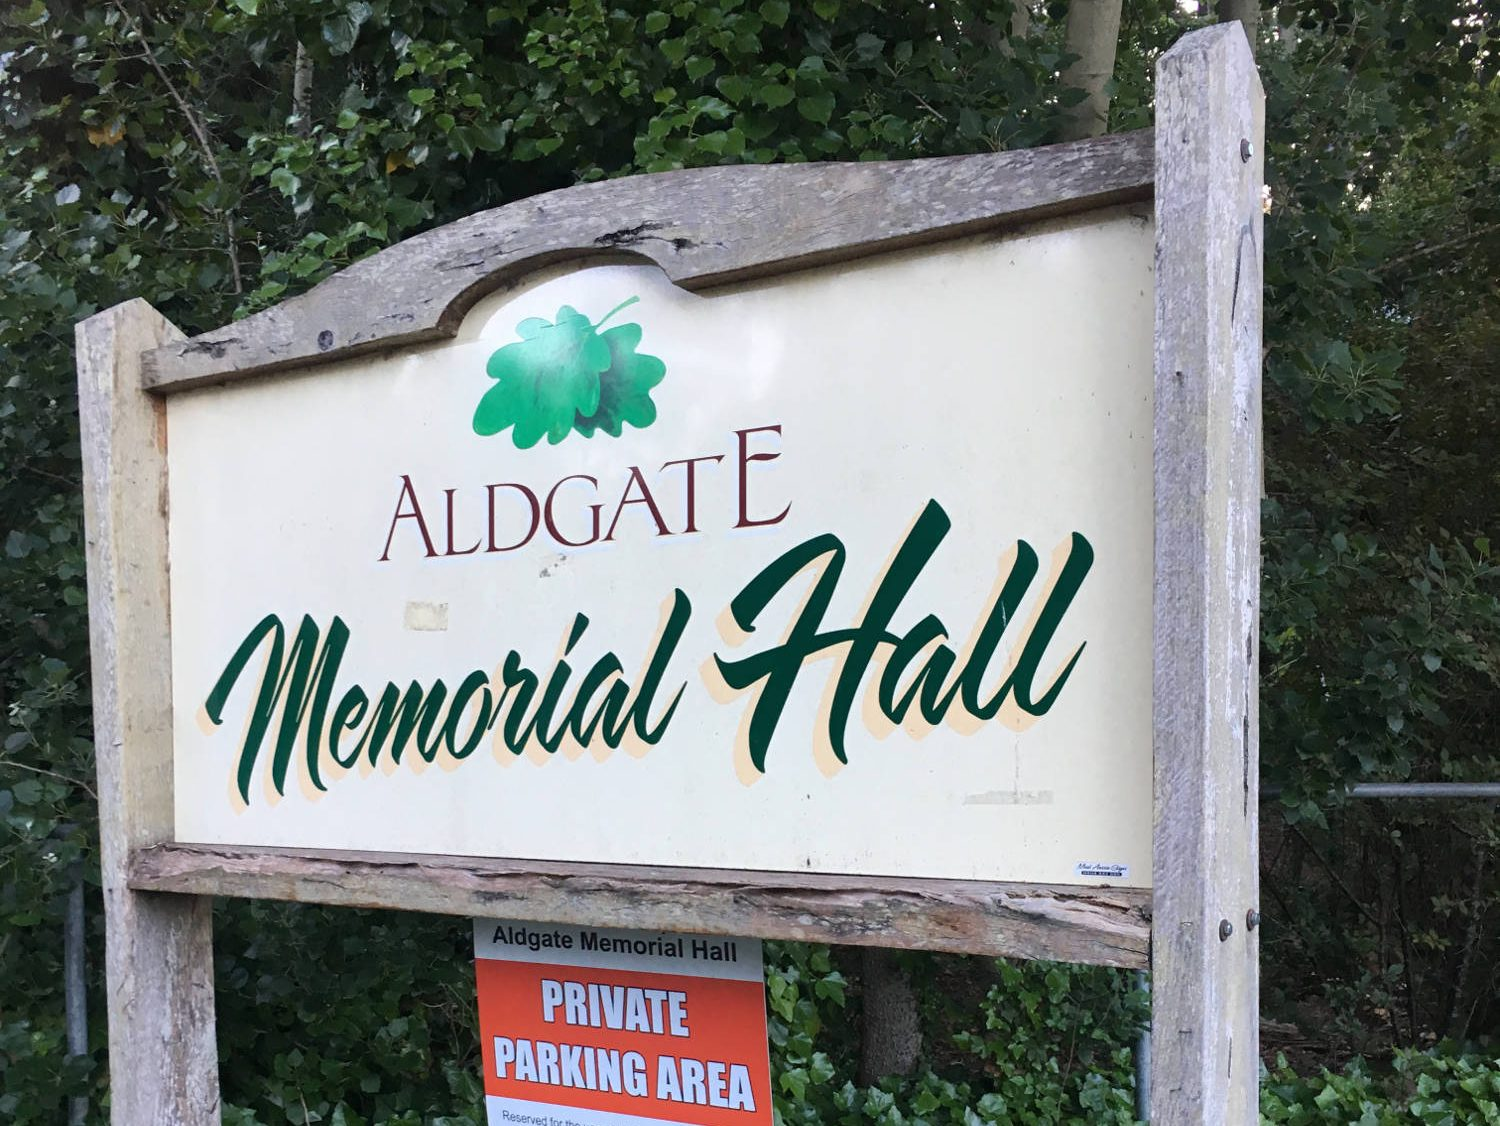 Aldgate Memorial Hall